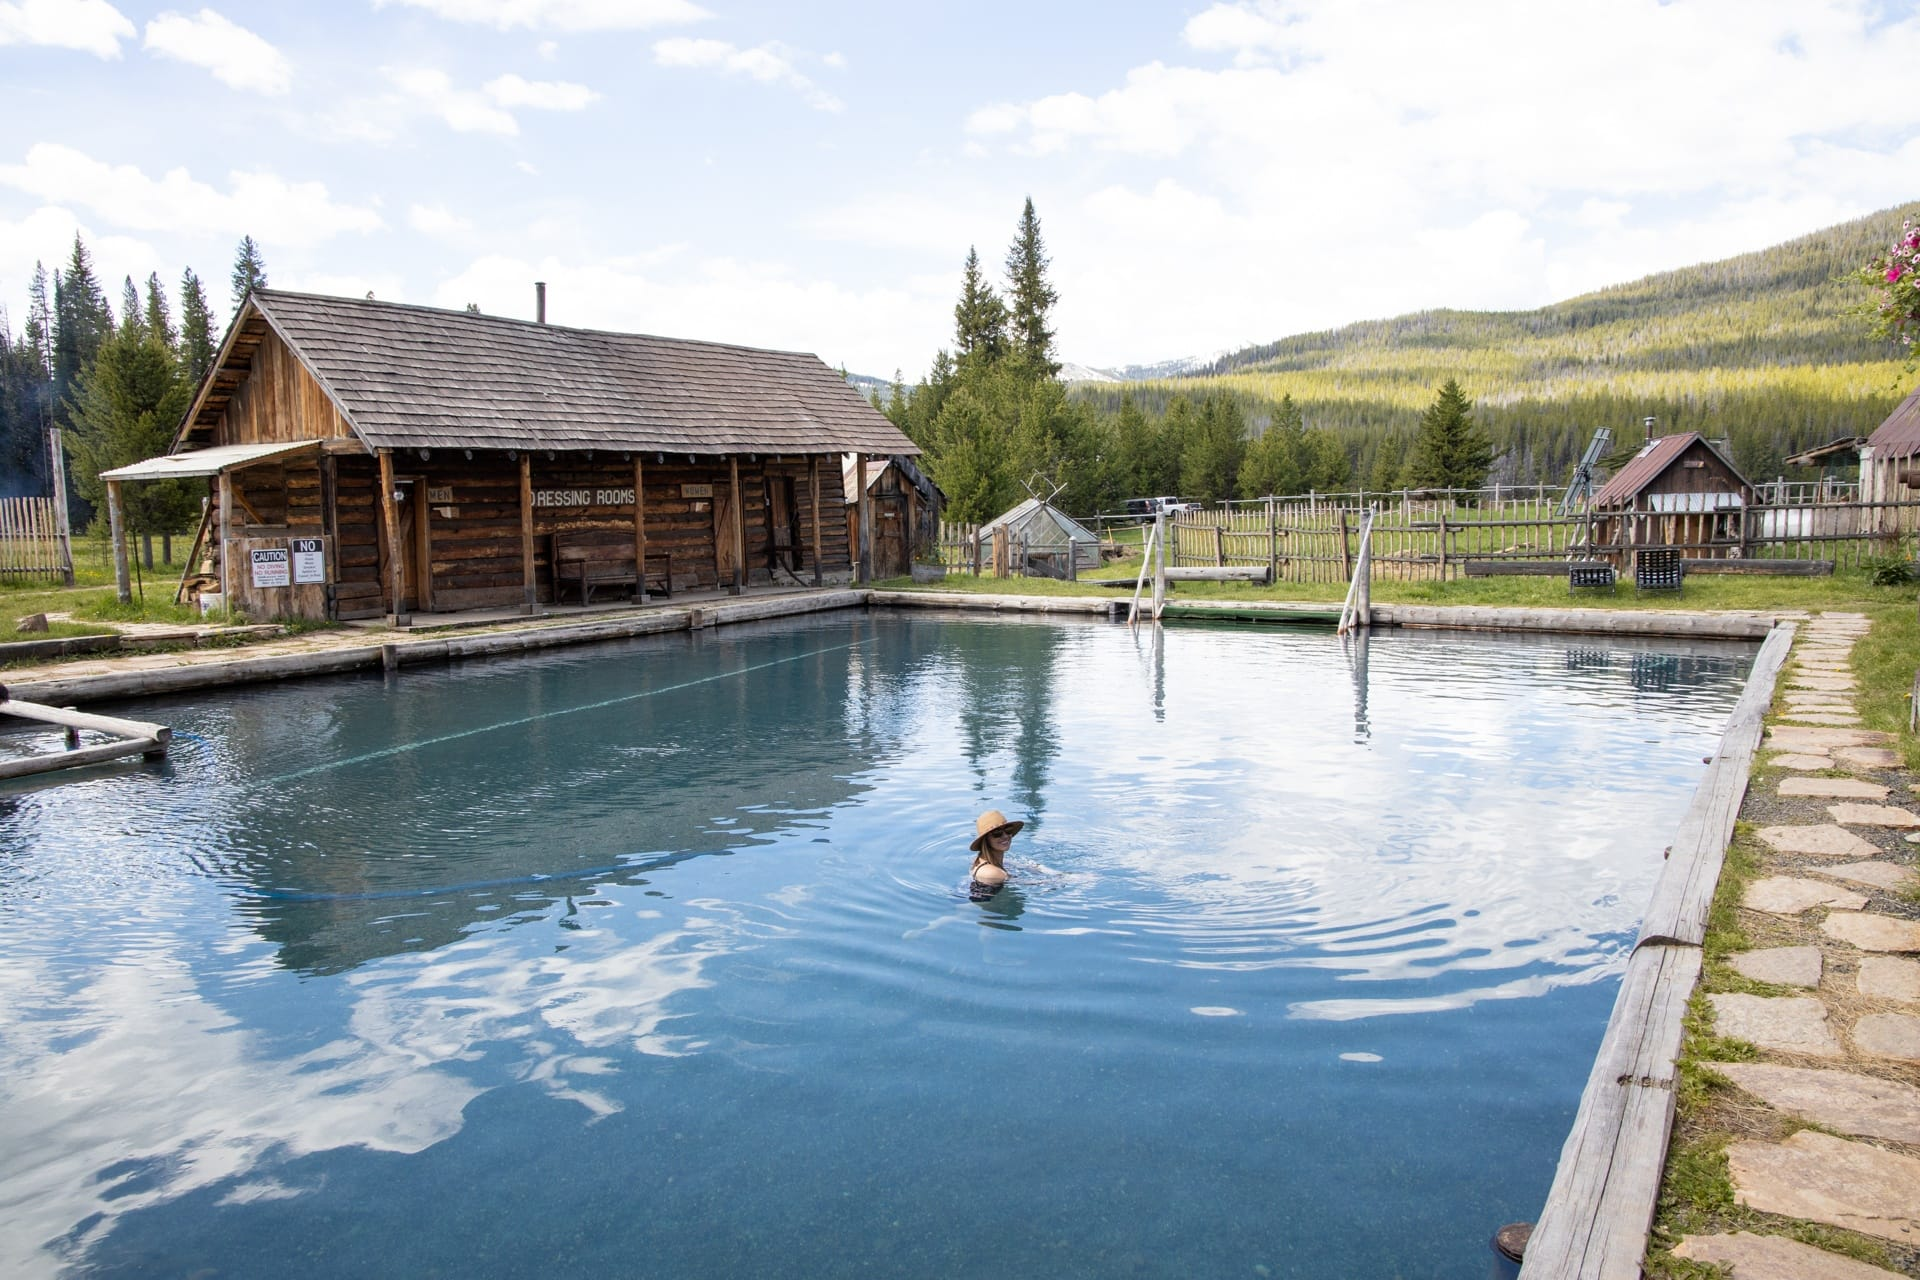 Visiting Burgdorf Hot Springs in McCall, Idaho